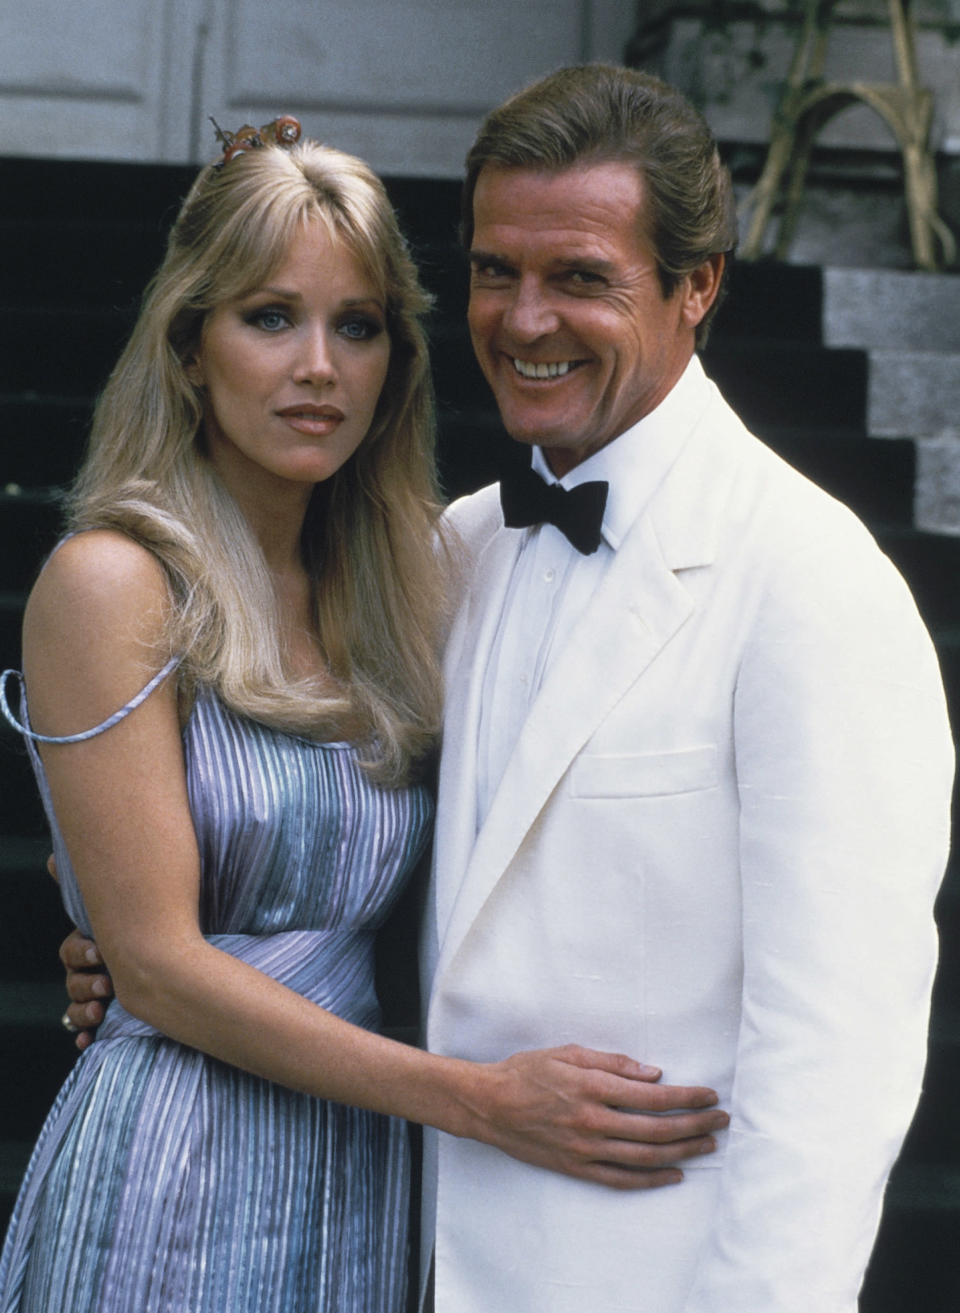 """FILE - Actor Roger Moore, right, poses with his co-star Tanya Roberts from the James Bond film """"A View to a Kill,"""" outside of Château de Chantilly in Chantilly, France on Aug. 17, 1984. Roberts, who captivated James Bond in """"A View to a Kill"""" and had roles on """"Charlie's Angels"""" and """"That '70s Show,"""" died Sunday, Jan. 3, 2021. She was 65. Her death was announced by her publicist. No cause of death was given. (AP Photo/Alexis Duclos, File)"""